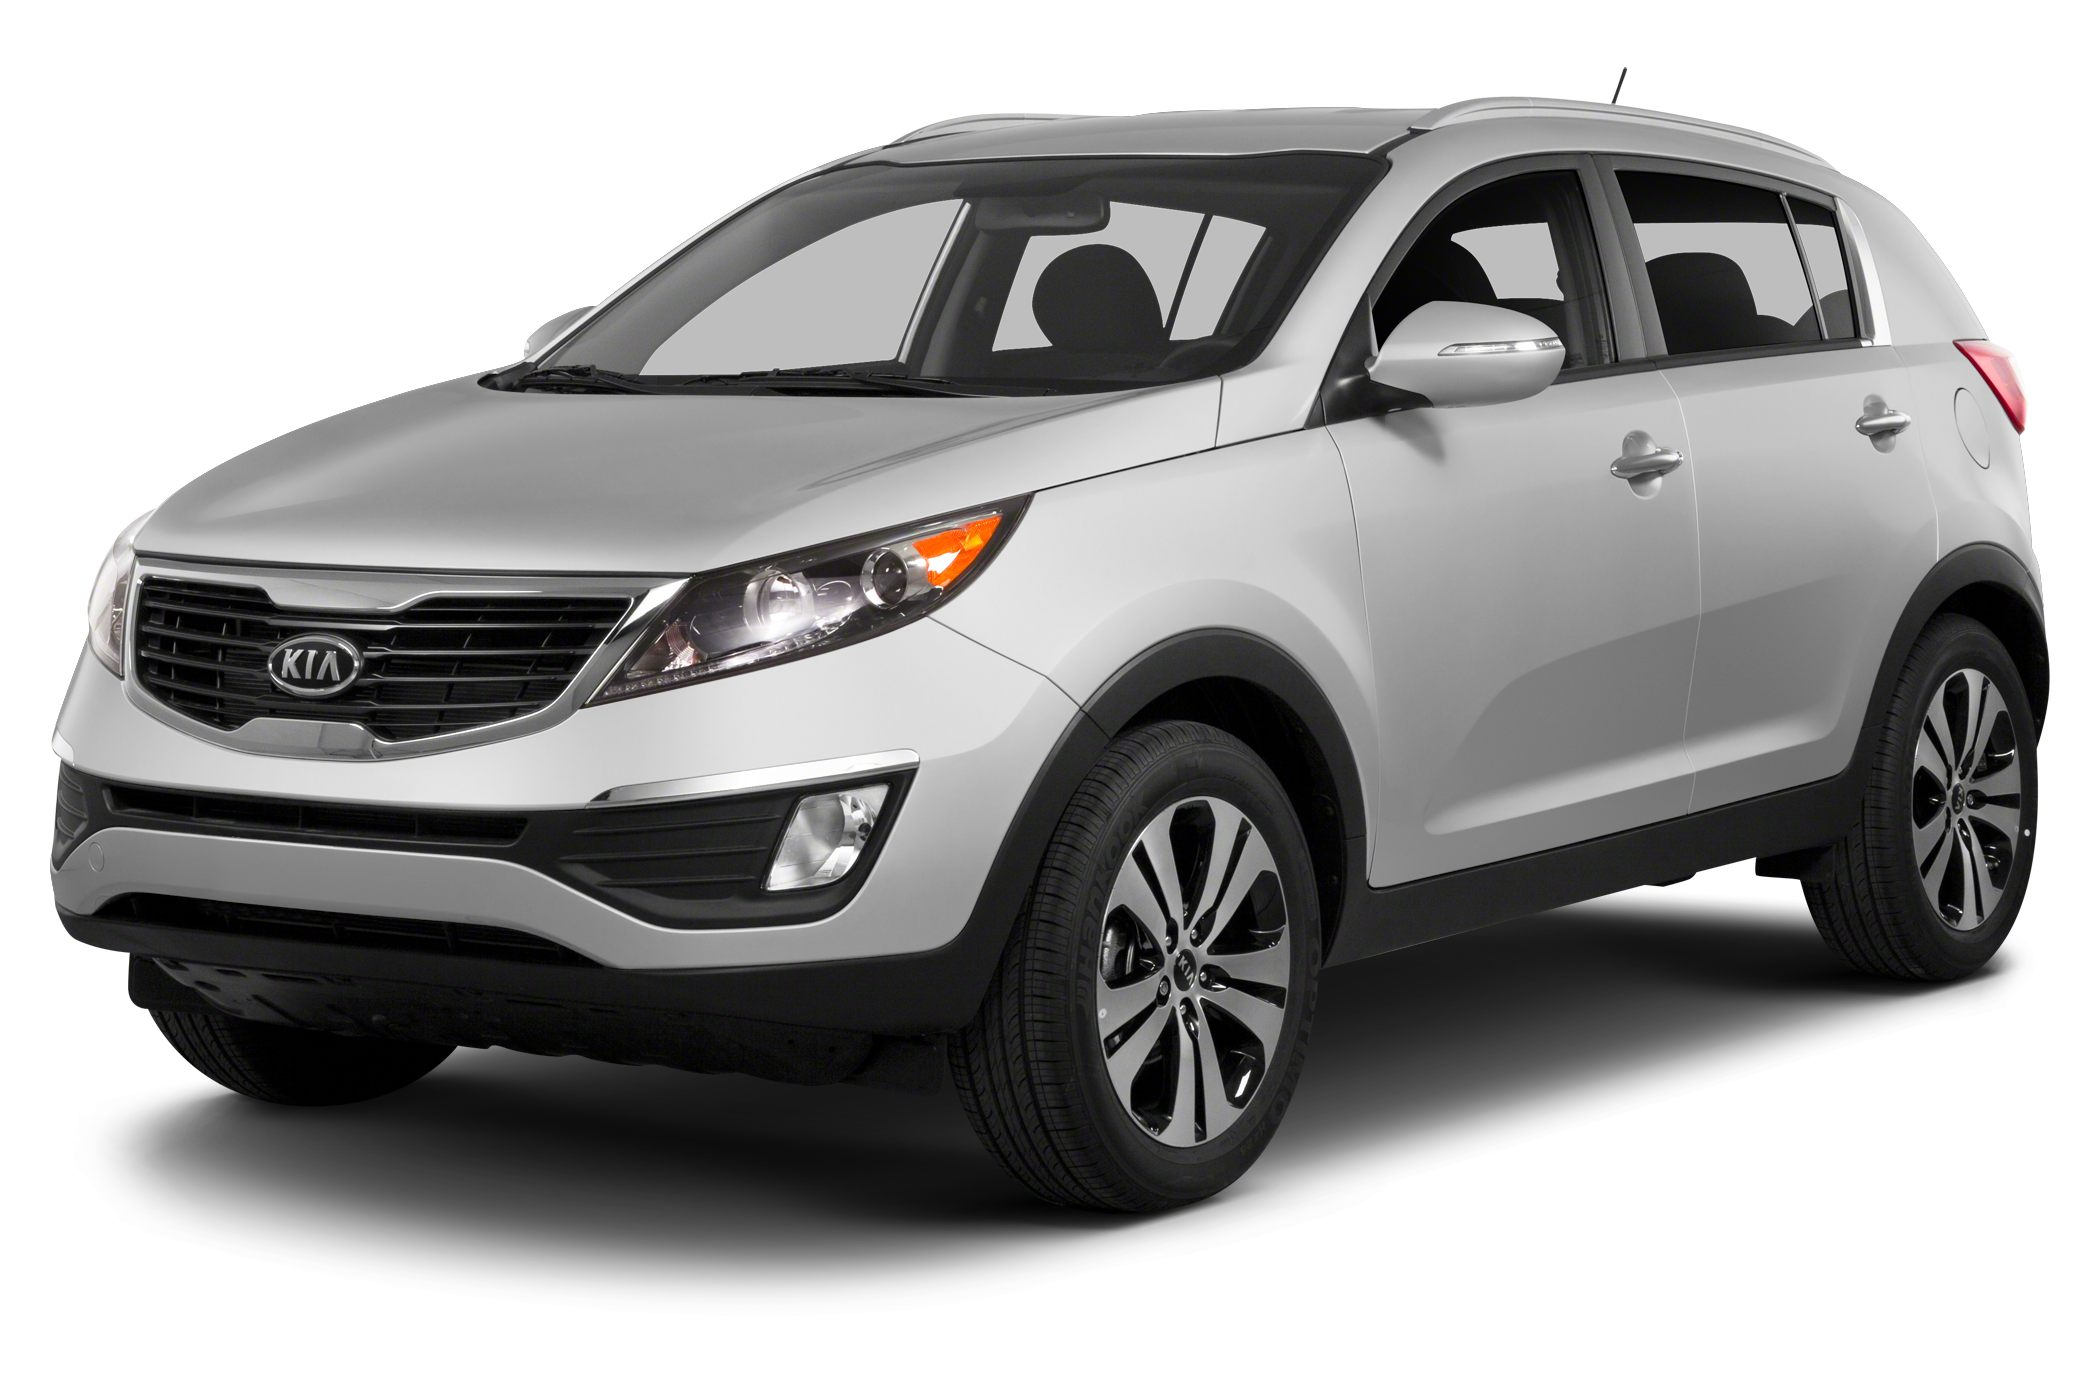 2013 Kia Sportage EX Certified Vehicle New Arrival LOW MILES This 2013 Kia Sportage EX will